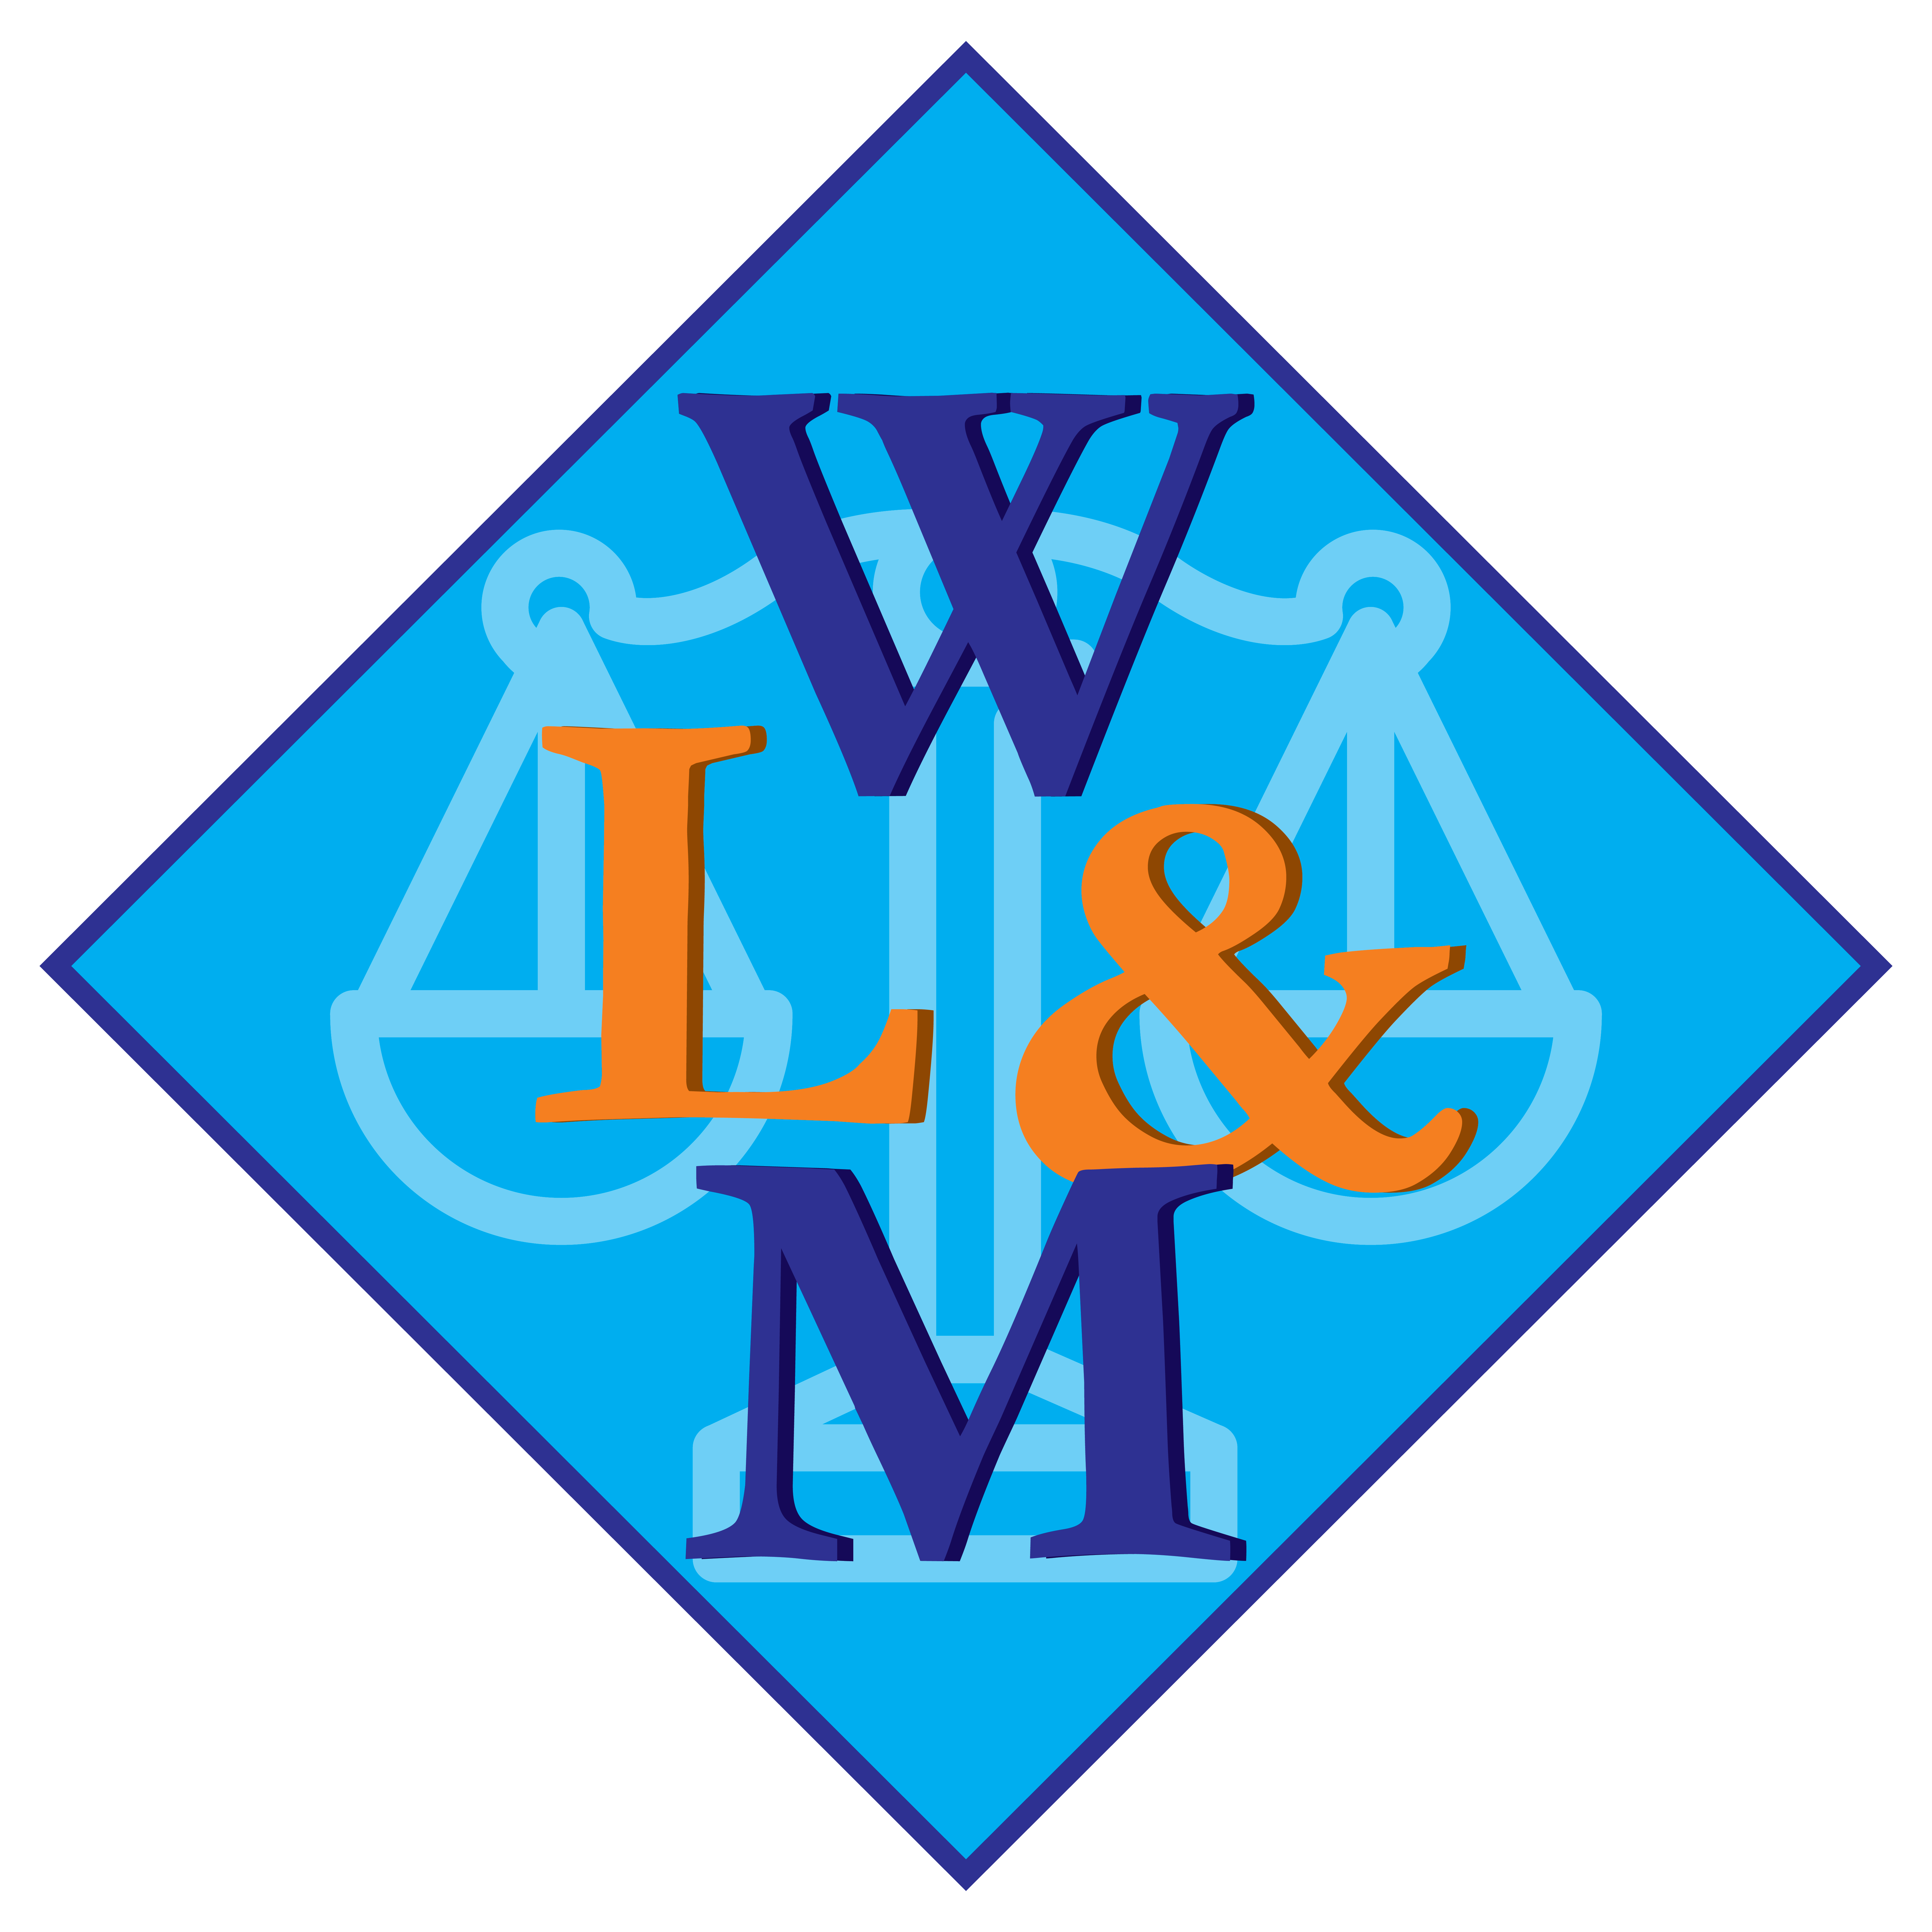 Willis Law and Mediation, PLLC